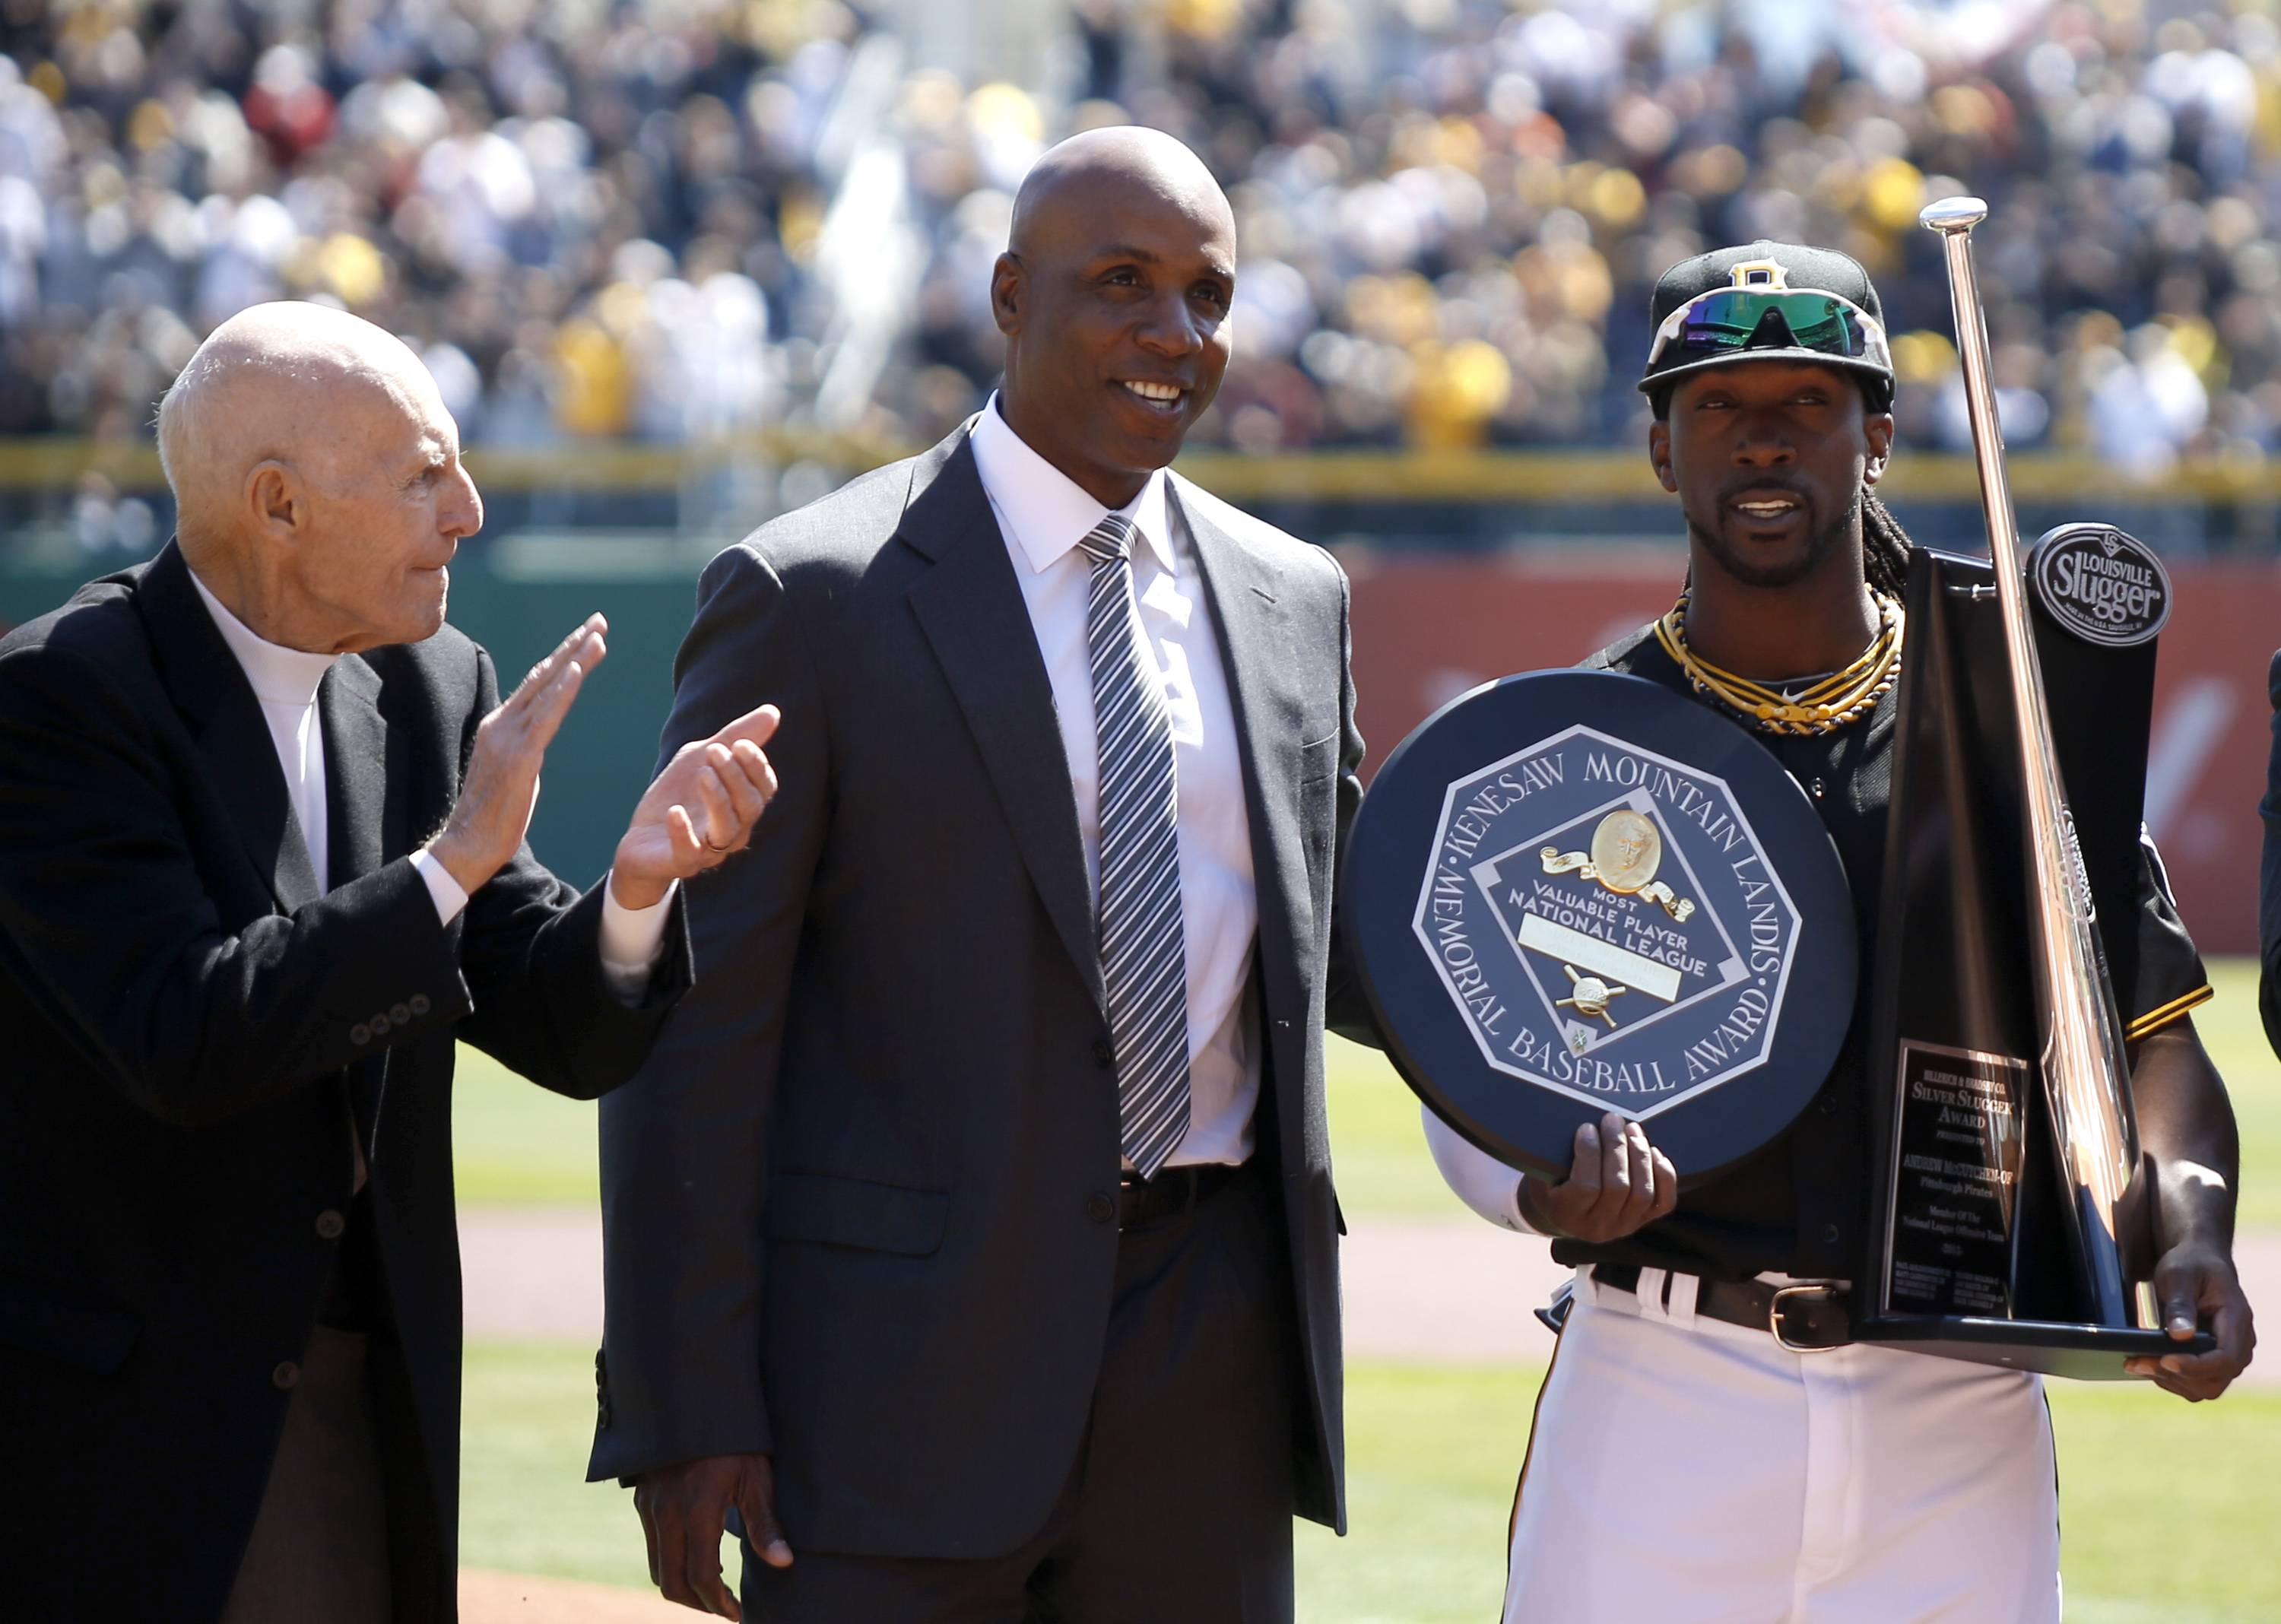 Pittsburgh Pirates center fielder Andrew McCutchen, right, holds his NL MVP trophy and his Silver Slugger award as he poses with former Pittsburgh Pirates outfielder Barry Bonds, center, and former Pittsburgh Pirates shortstop Dick Groat, both former NL baseball MVP award winners.